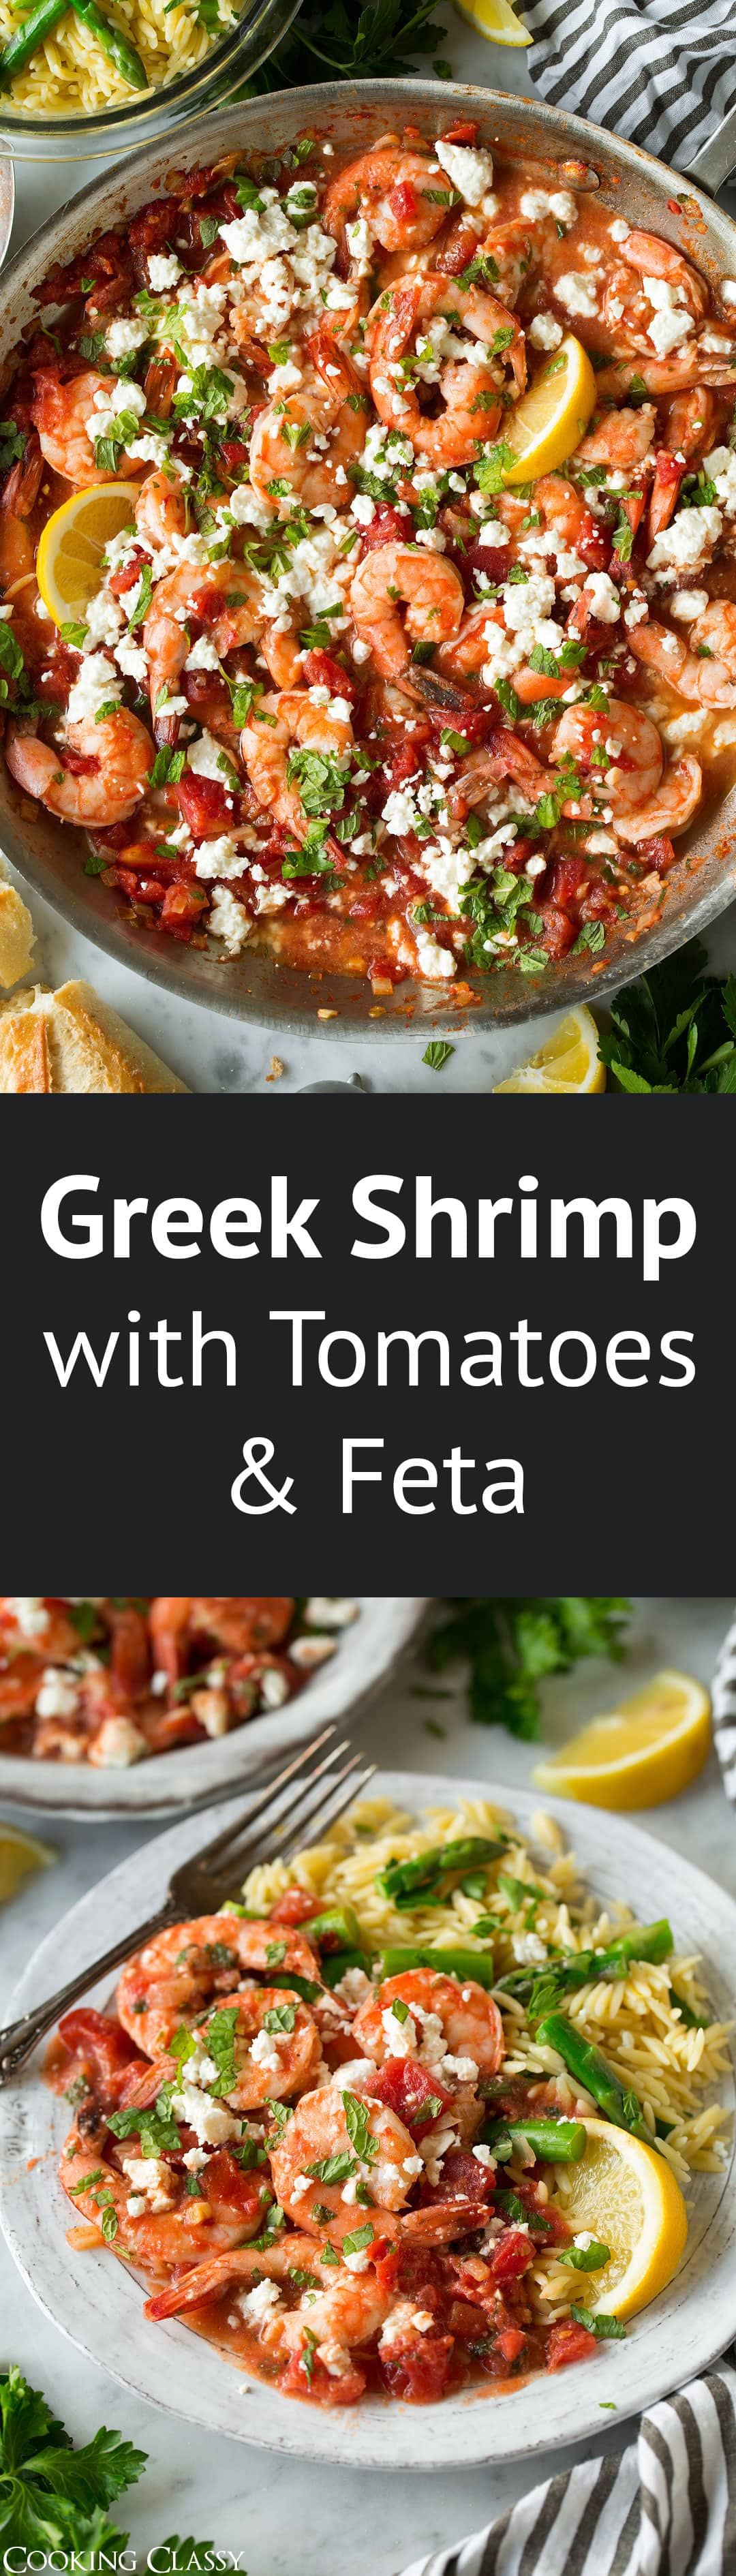 Greek Shrimp with Tomatoes and Feta - A perfectly easy and satisfying shrimp dish that has such a delicious combination of Mediterranean flavors. Easy enough for a weeknight dinner yet tasty enough to serve to guests on the weekend. #shrimp #greekshrimp #easydinner #recipe